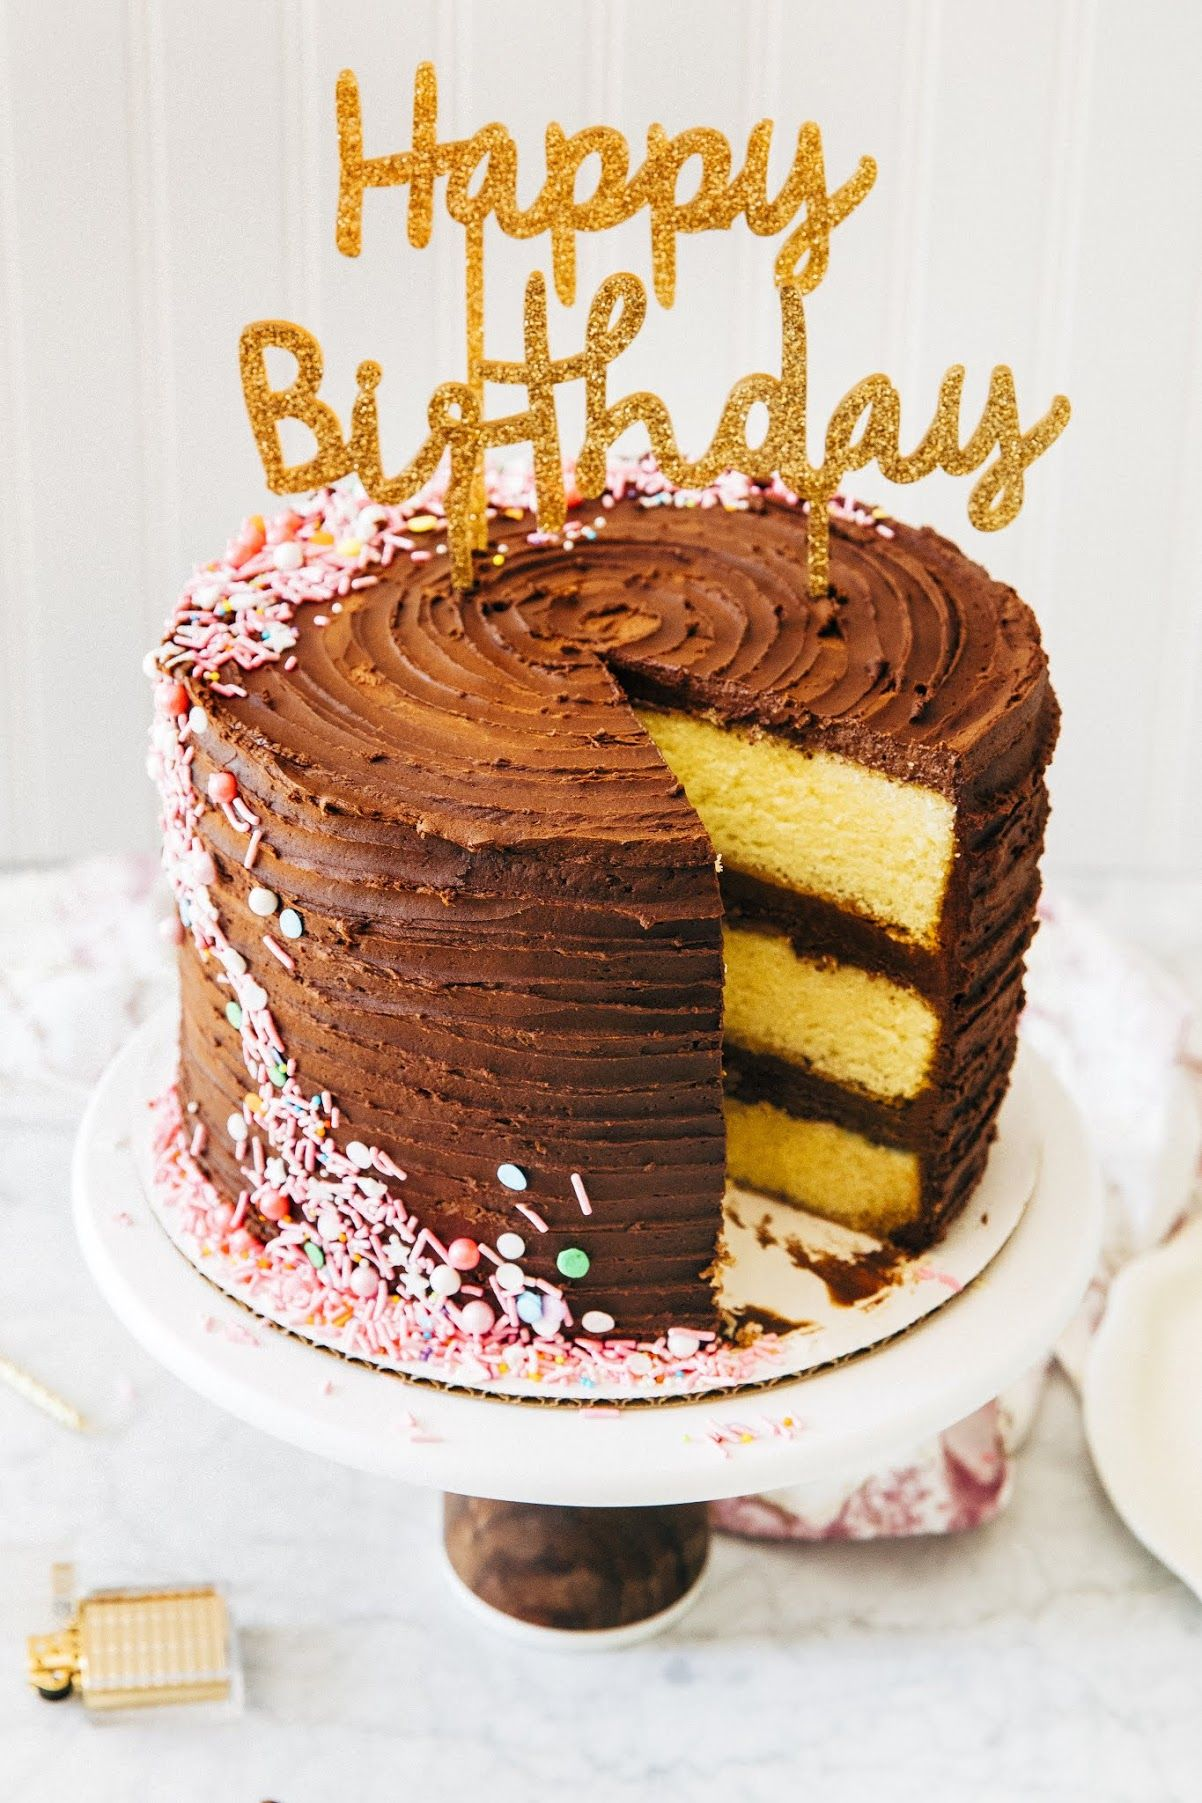 Remarkable Old Fashioned Yellow Birthday Cake With Images Chocolate Layer Funny Birthday Cards Online Elaedamsfinfo